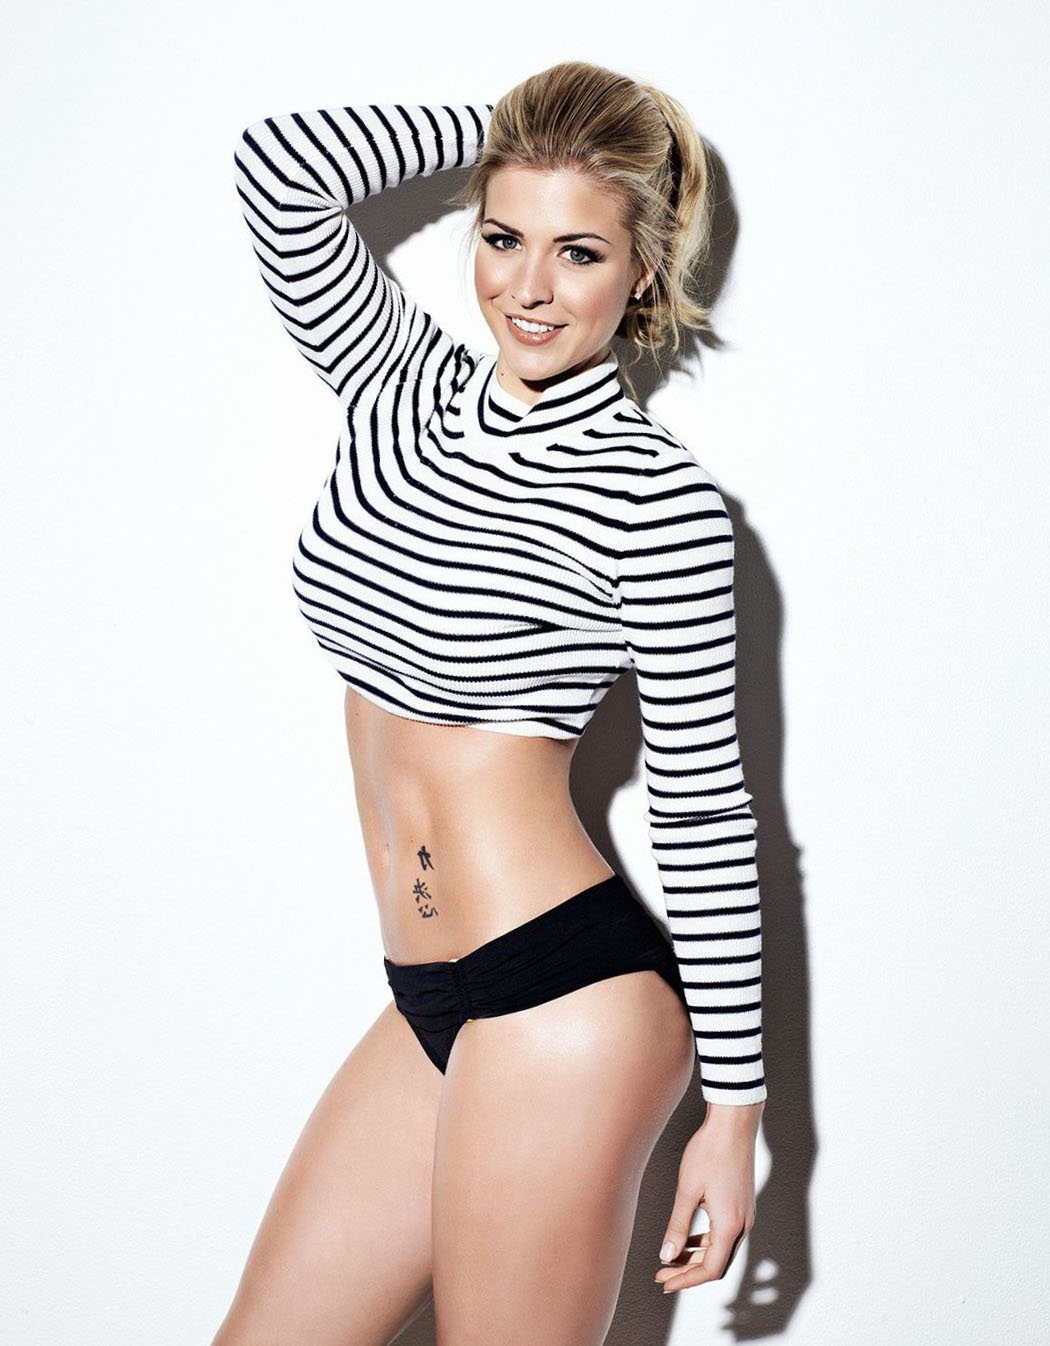 Favourites, gemma atkinson naked came with